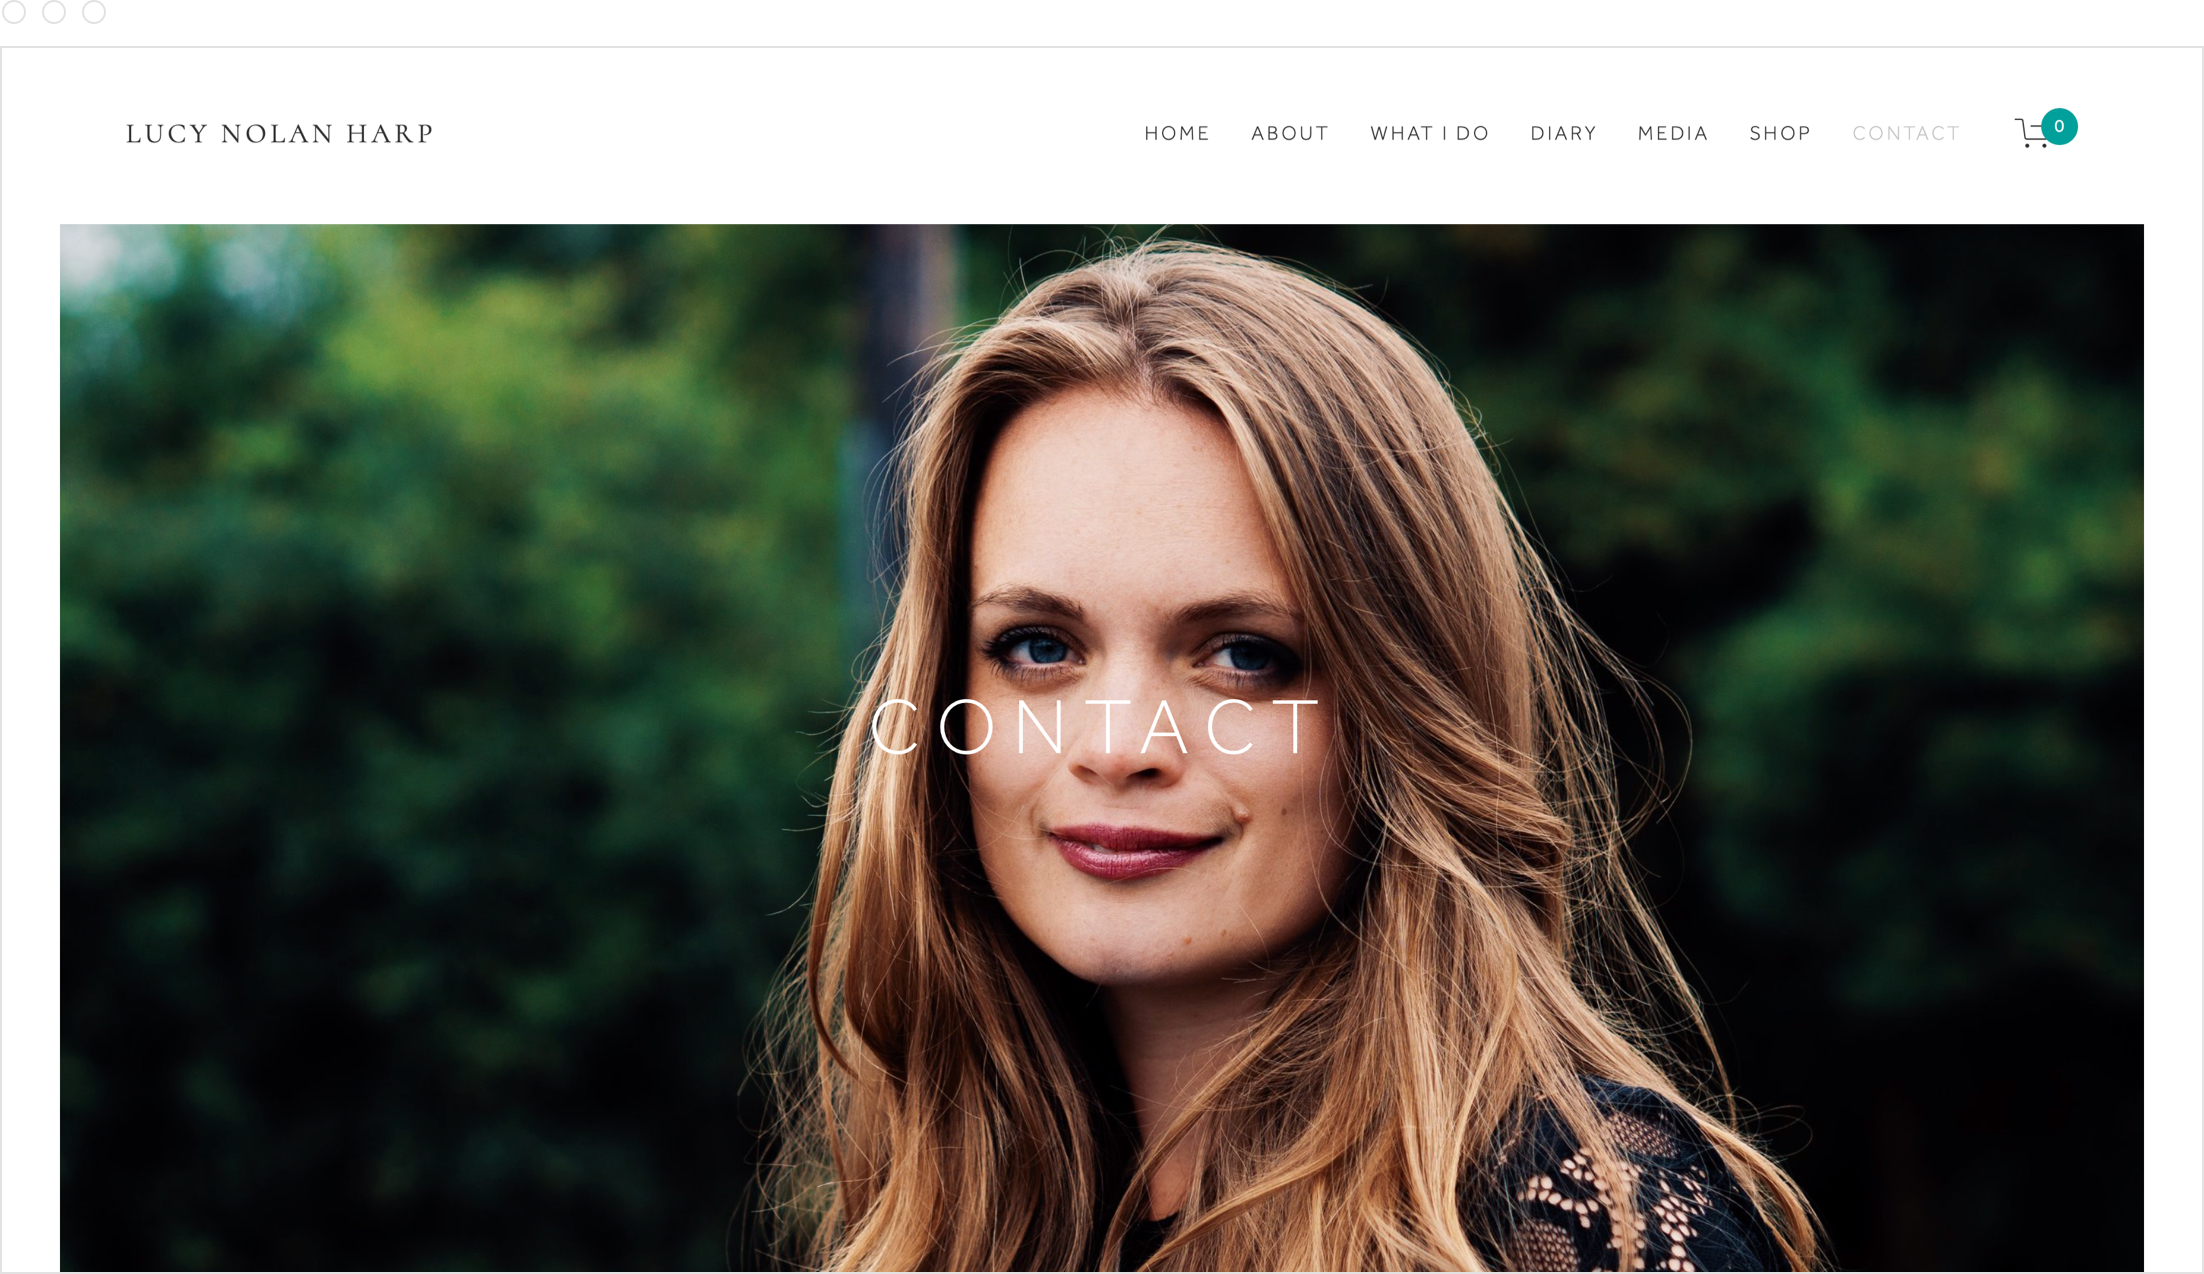 Simple, modern, clear, bright website design by Jack Watkins for award-winning classical musician and harpist, Lucy Nolan